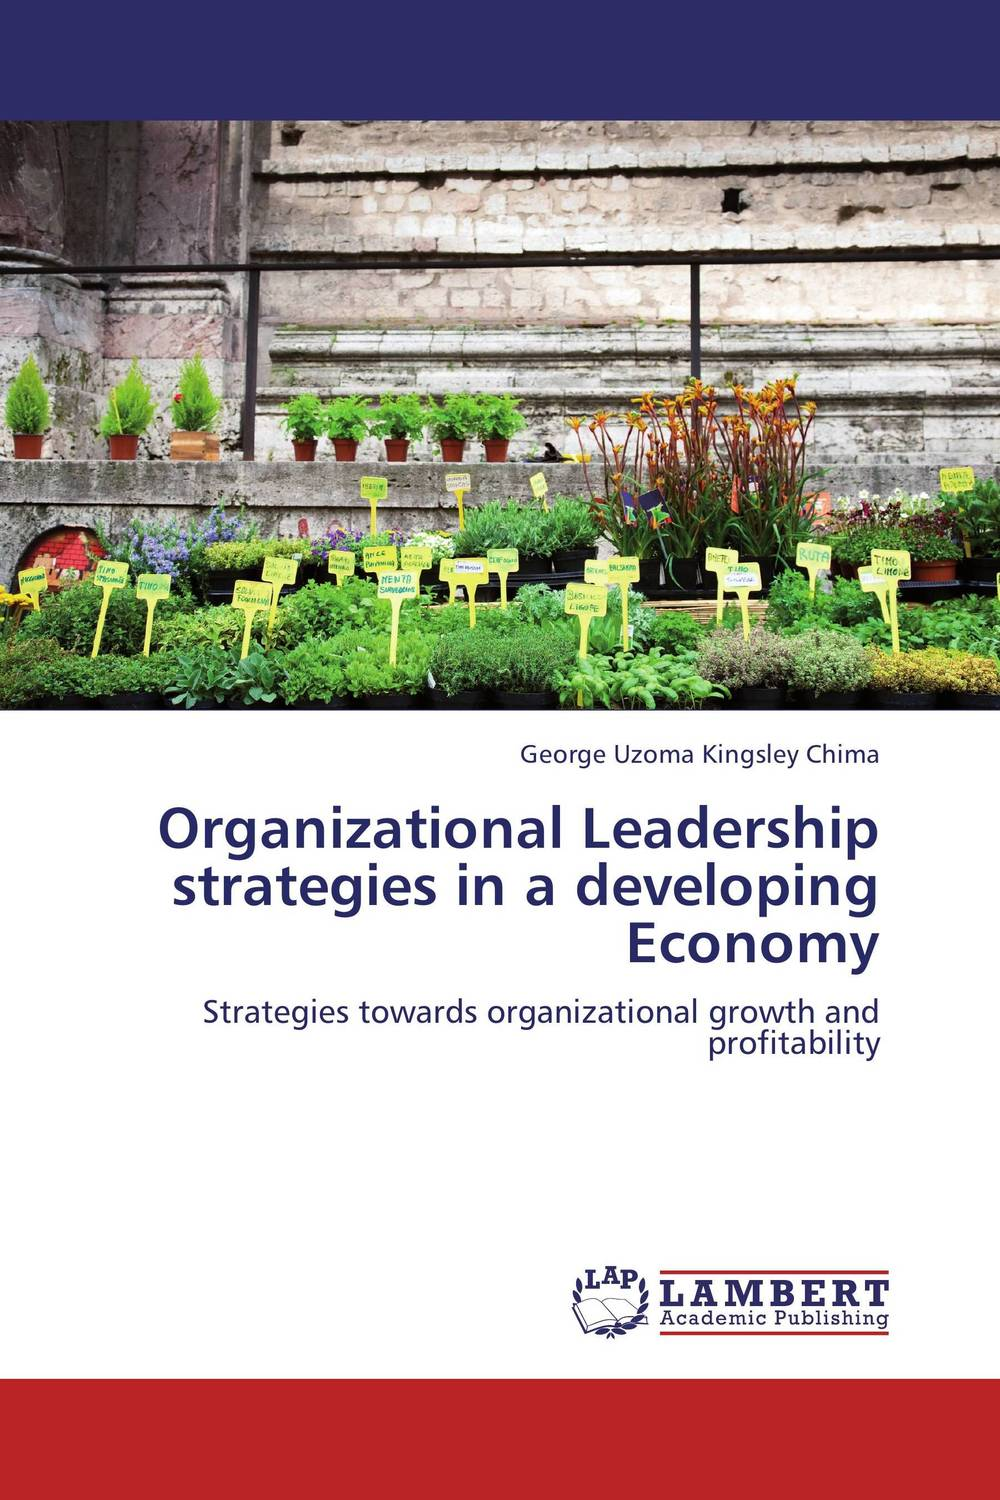 Organizational Leadership strategies in a developing Economy peter schein organizational culture and leadership